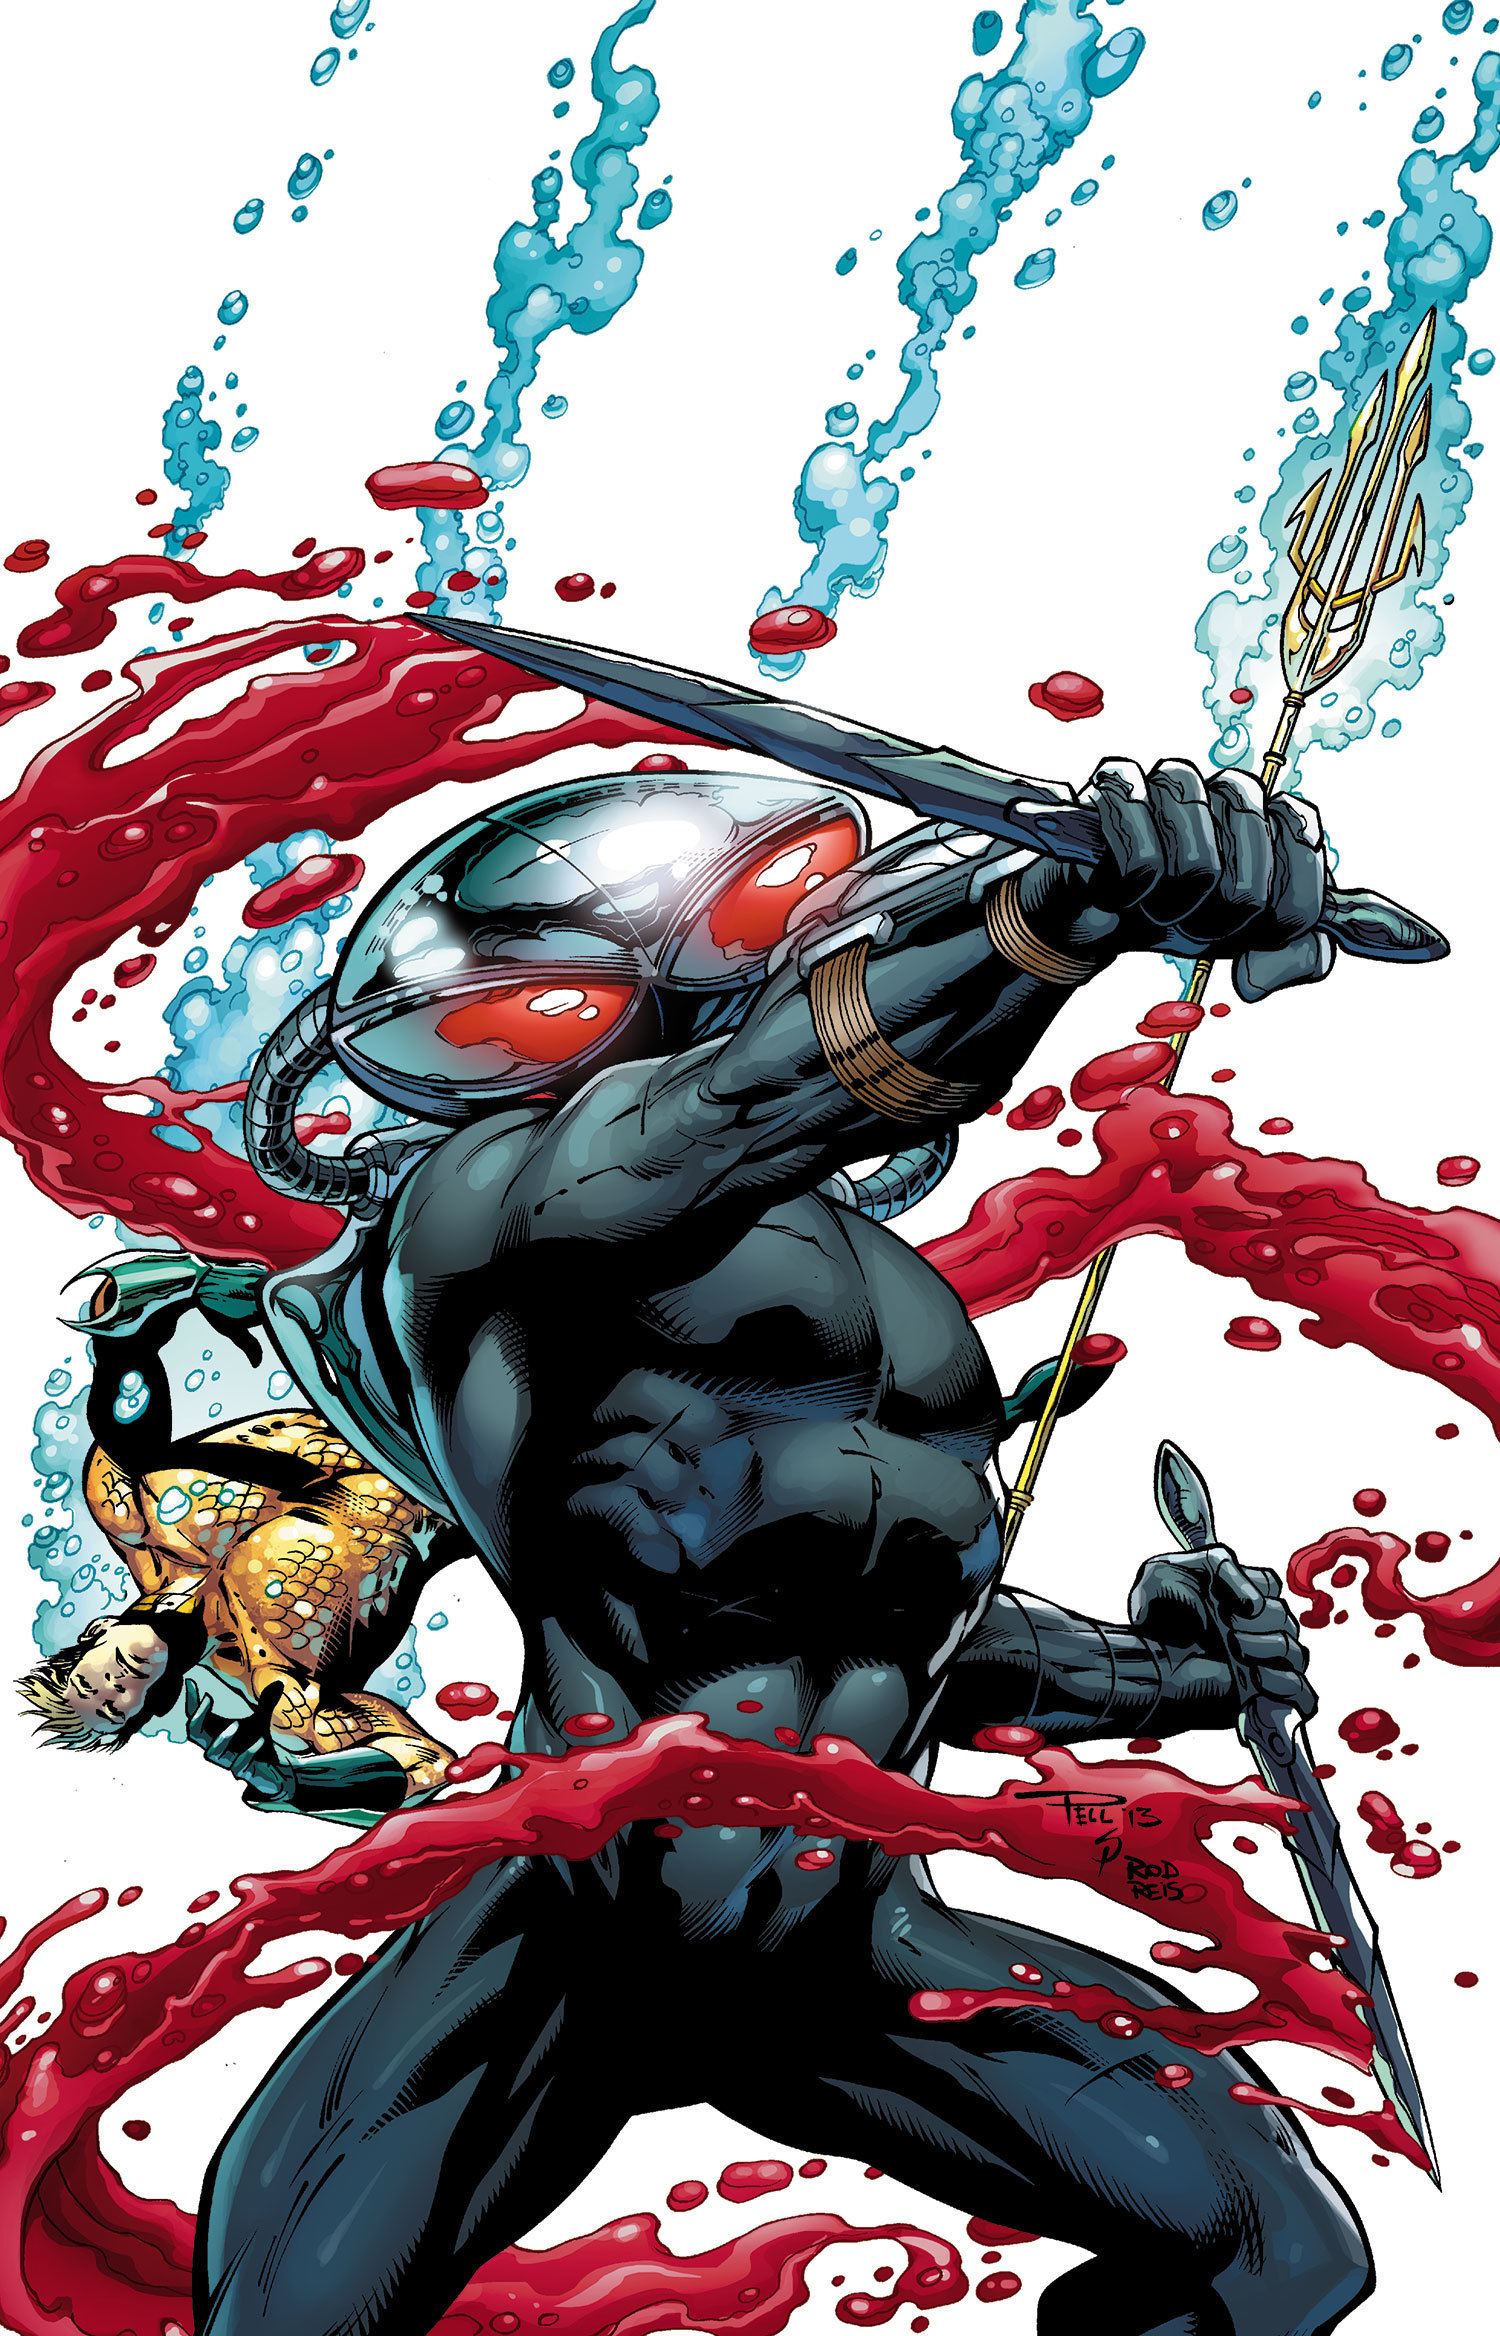 Black Manta from DC's Aquaman